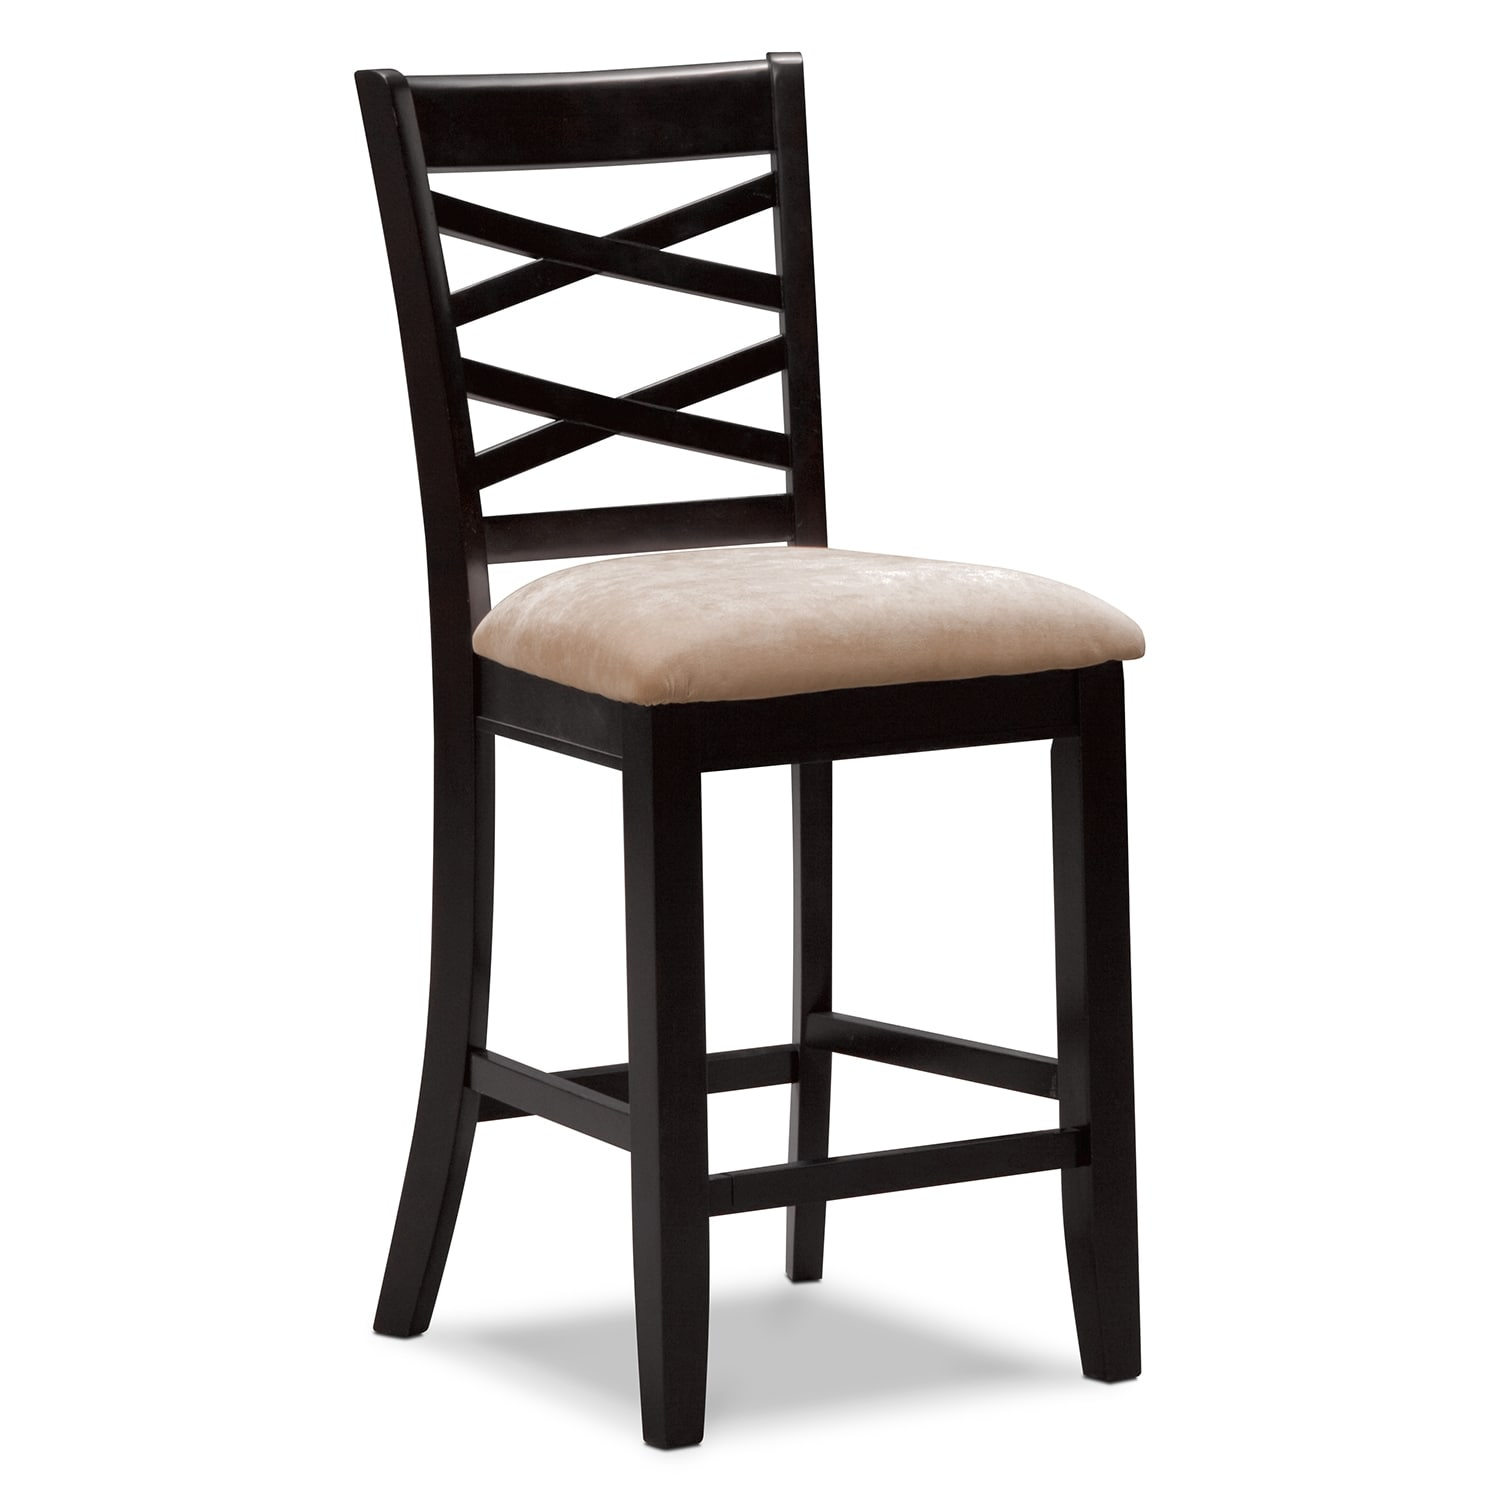 Davis counter height stool espresso - Average height of bar stools ...